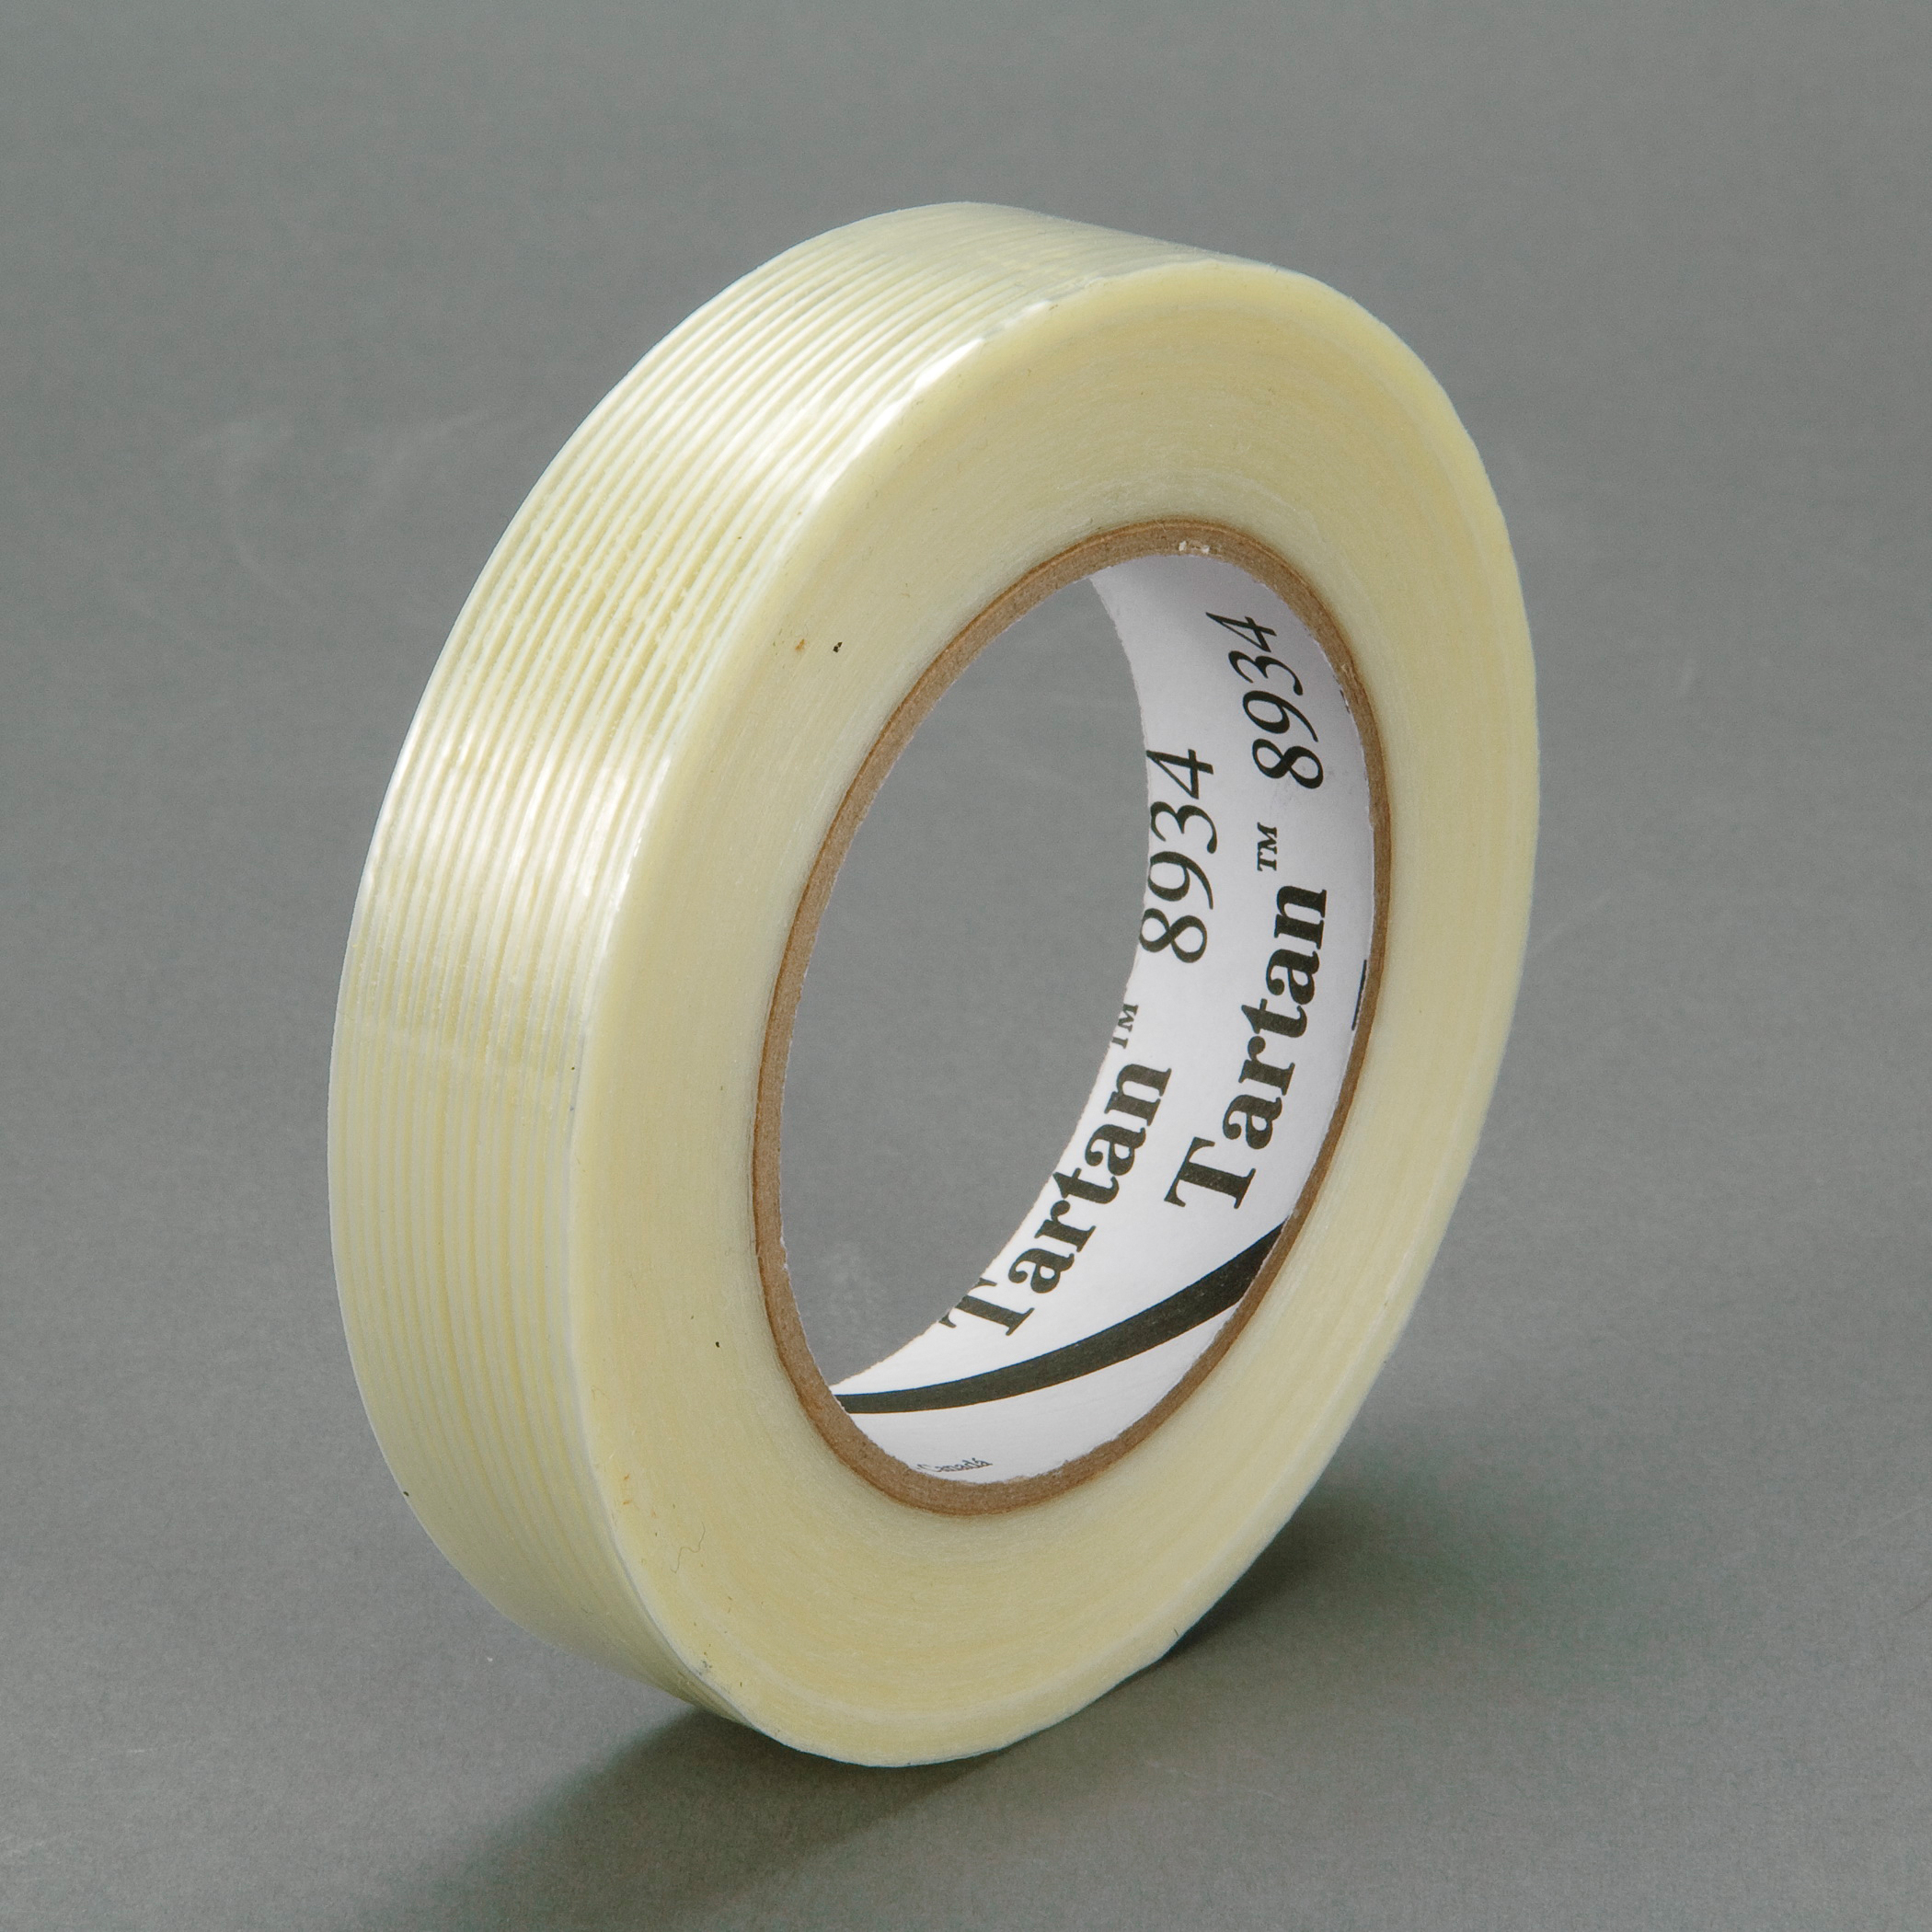 Tartan™ 021200-86517 High Strength Filament Tape, 55 m L x 9 mm W, 4 mil THK, Fiberglass Yarn Filament, Synthetic Rubber Adhesive, Polypropylene Film Backing, Clear